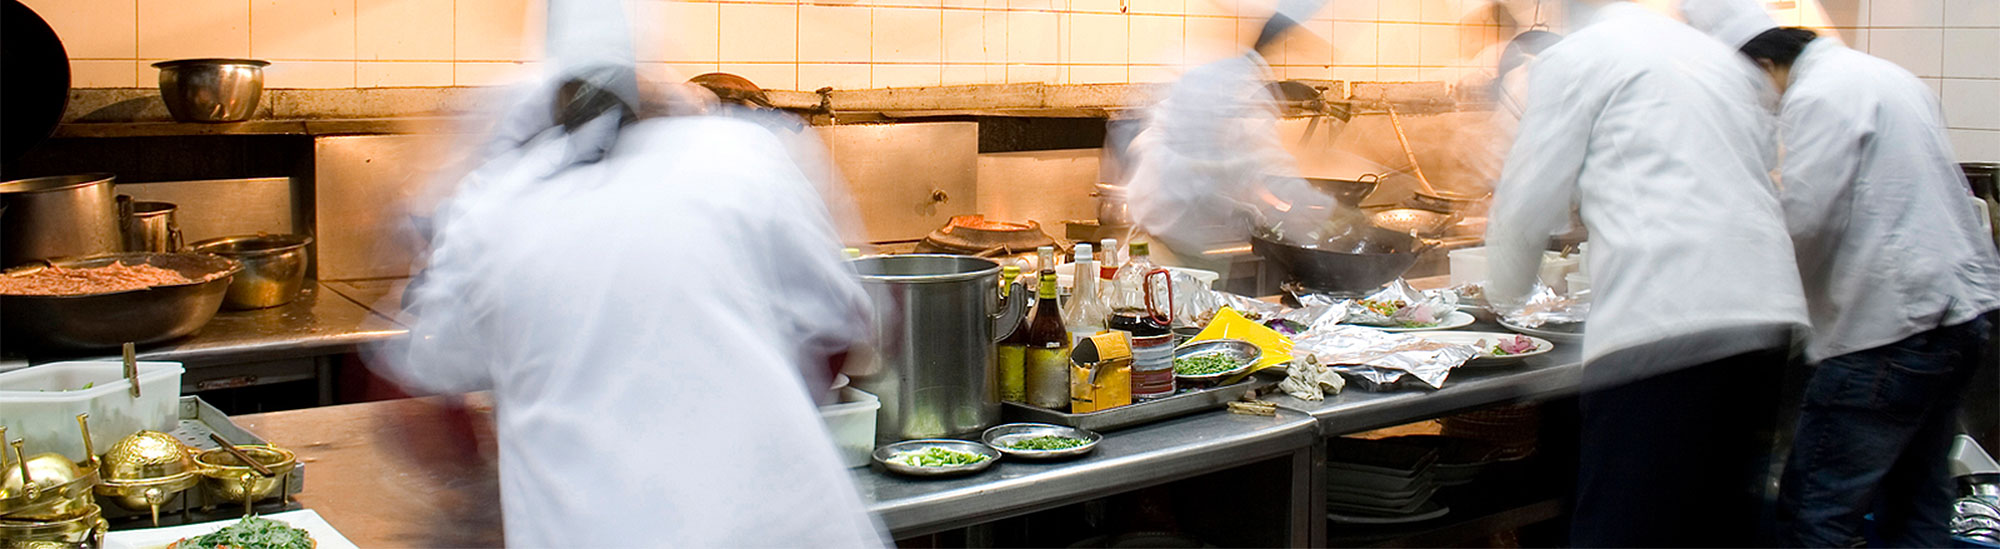 Culinary Information For Professional Chefs Chefs Resources